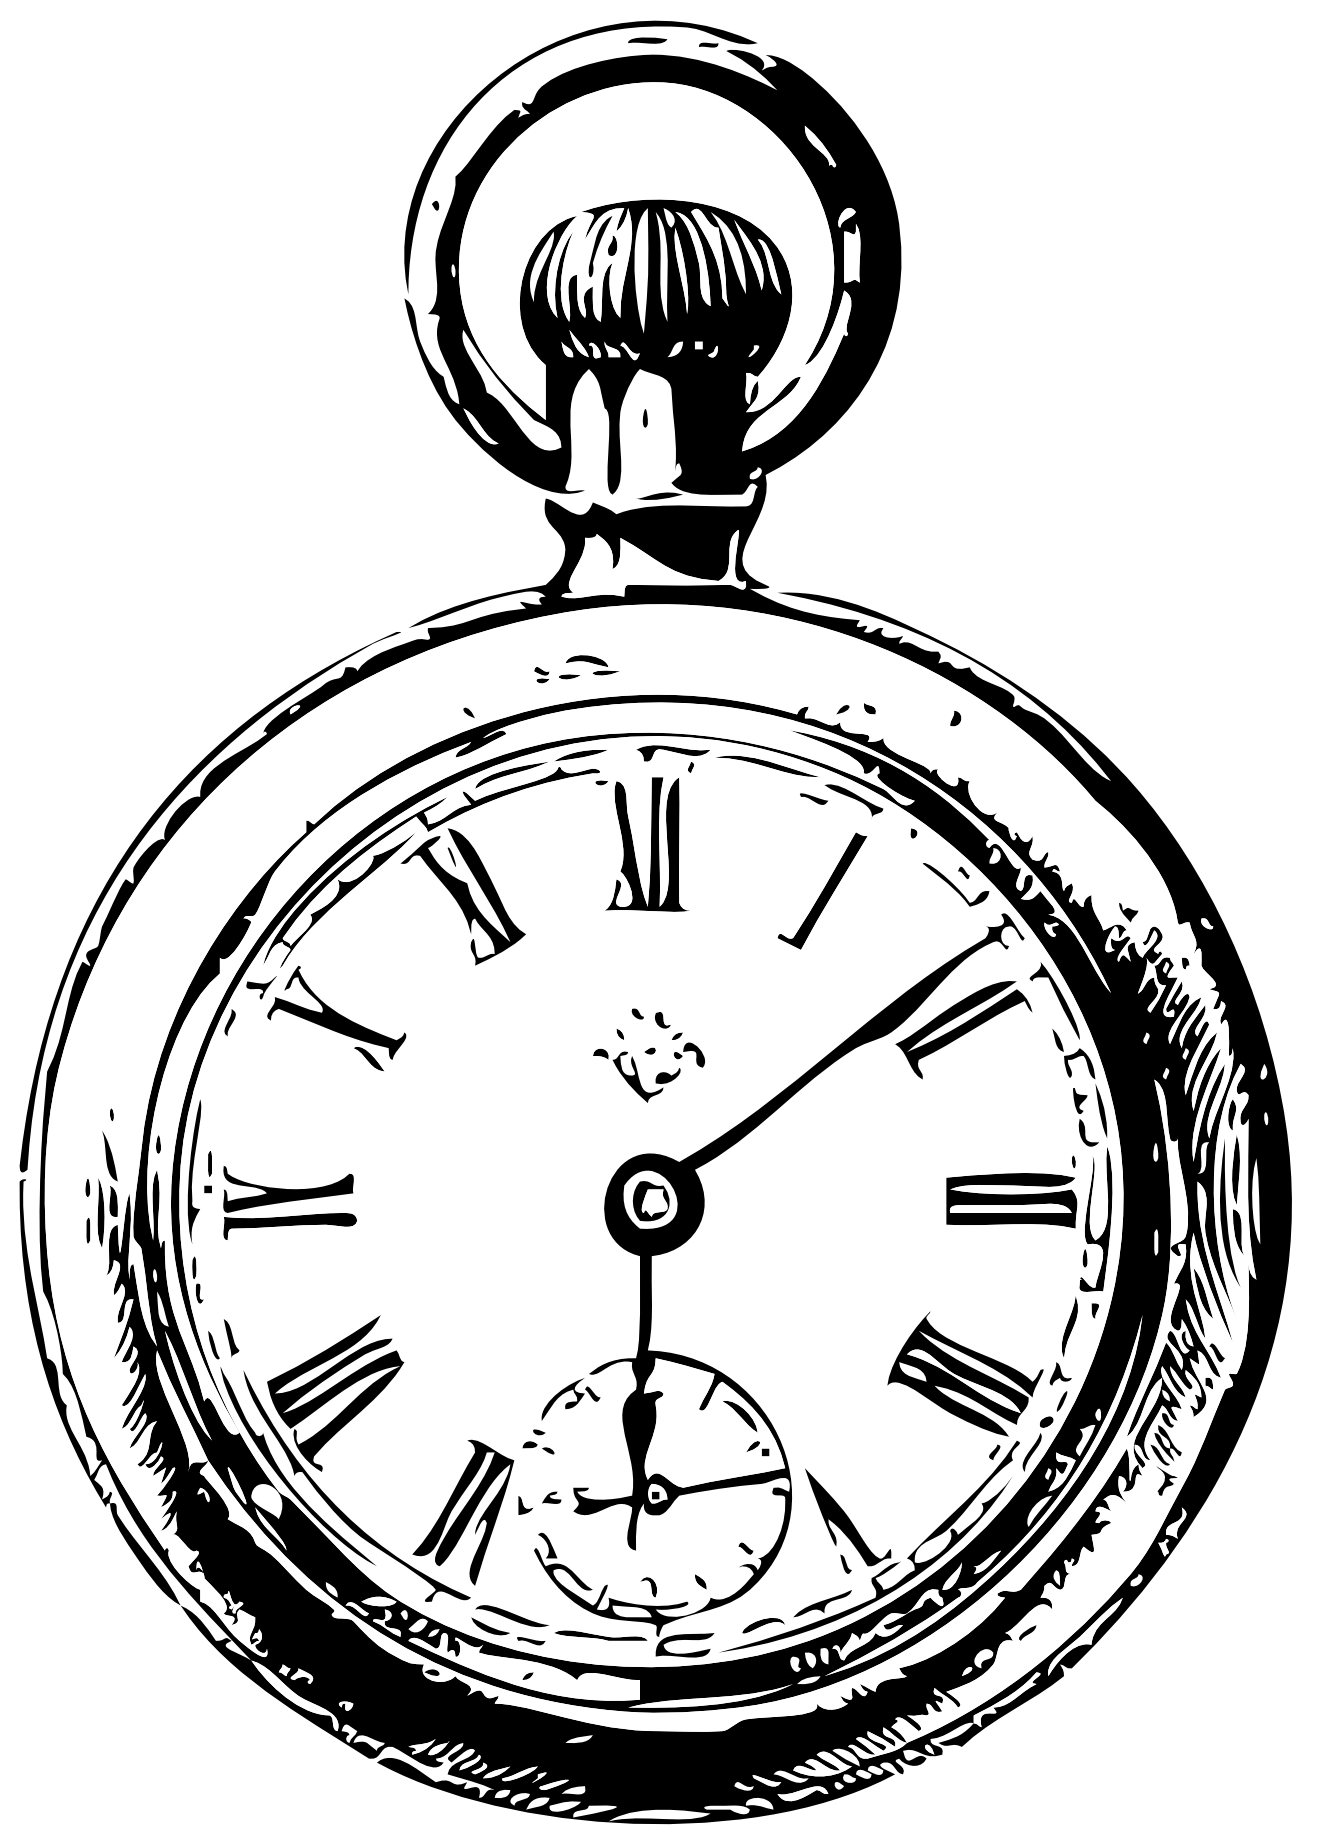 clipart of watches and clocks - photo #13